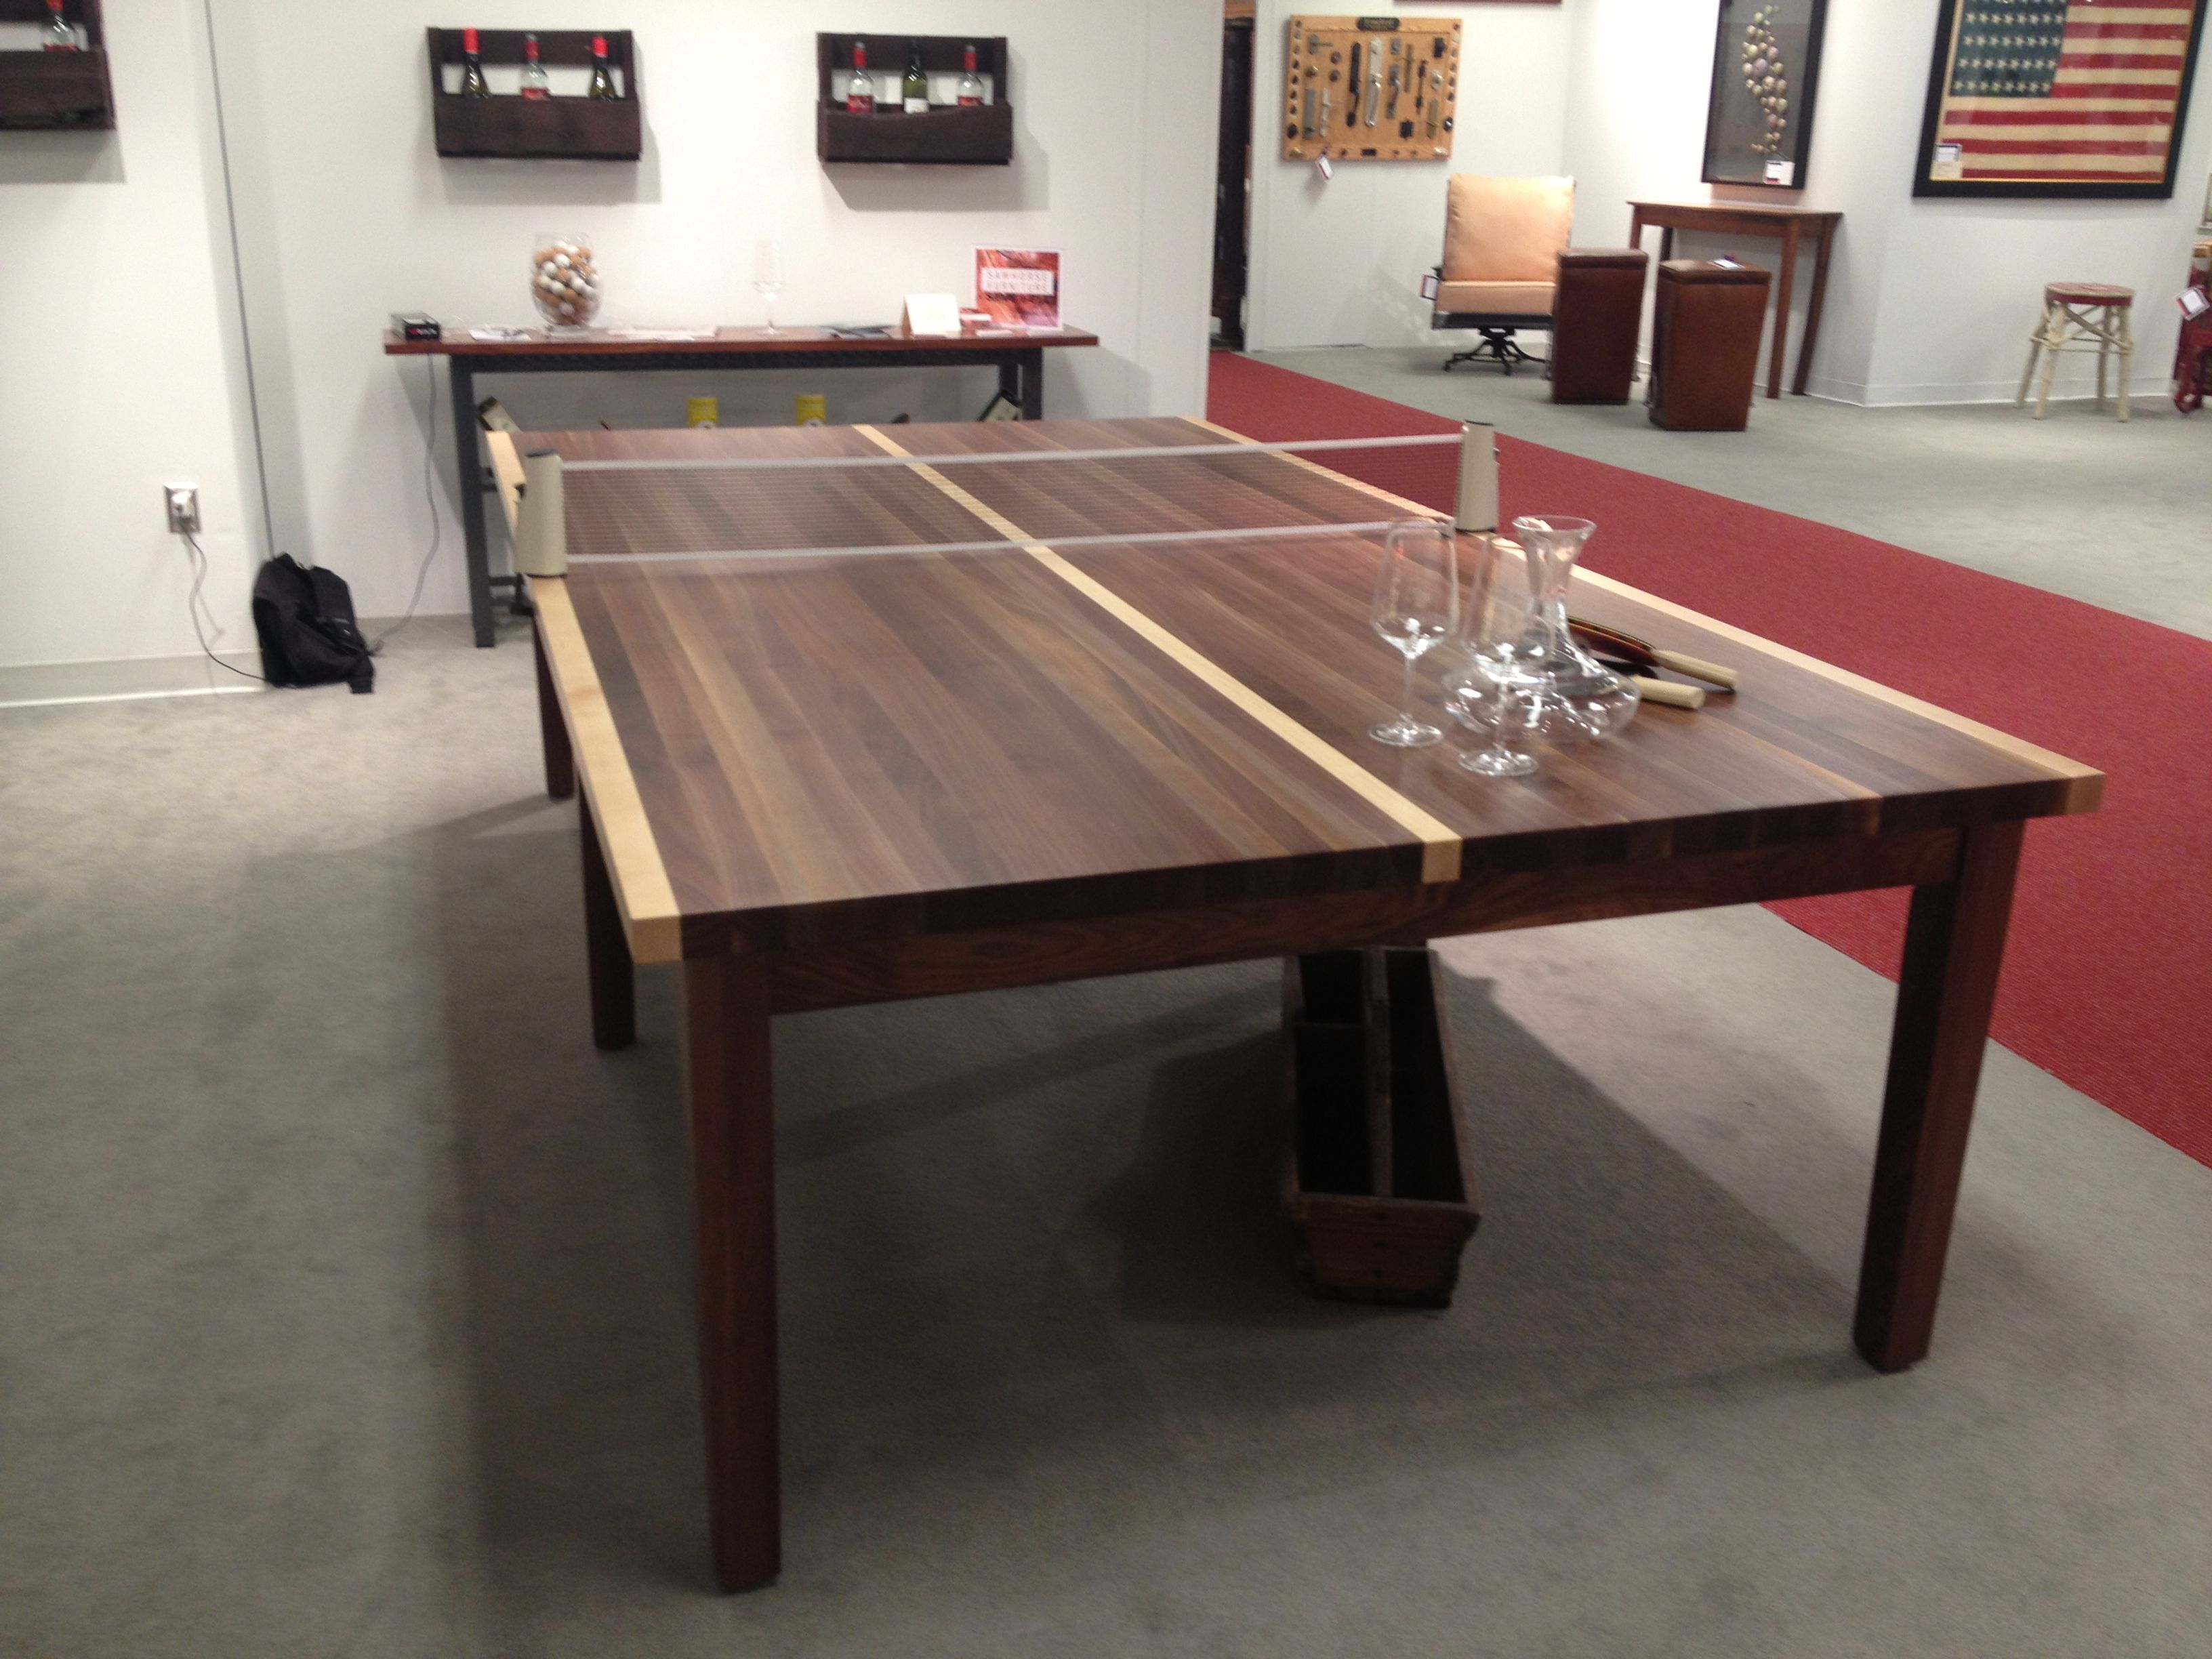 Custom woodtop ping pong table. Ping pong table